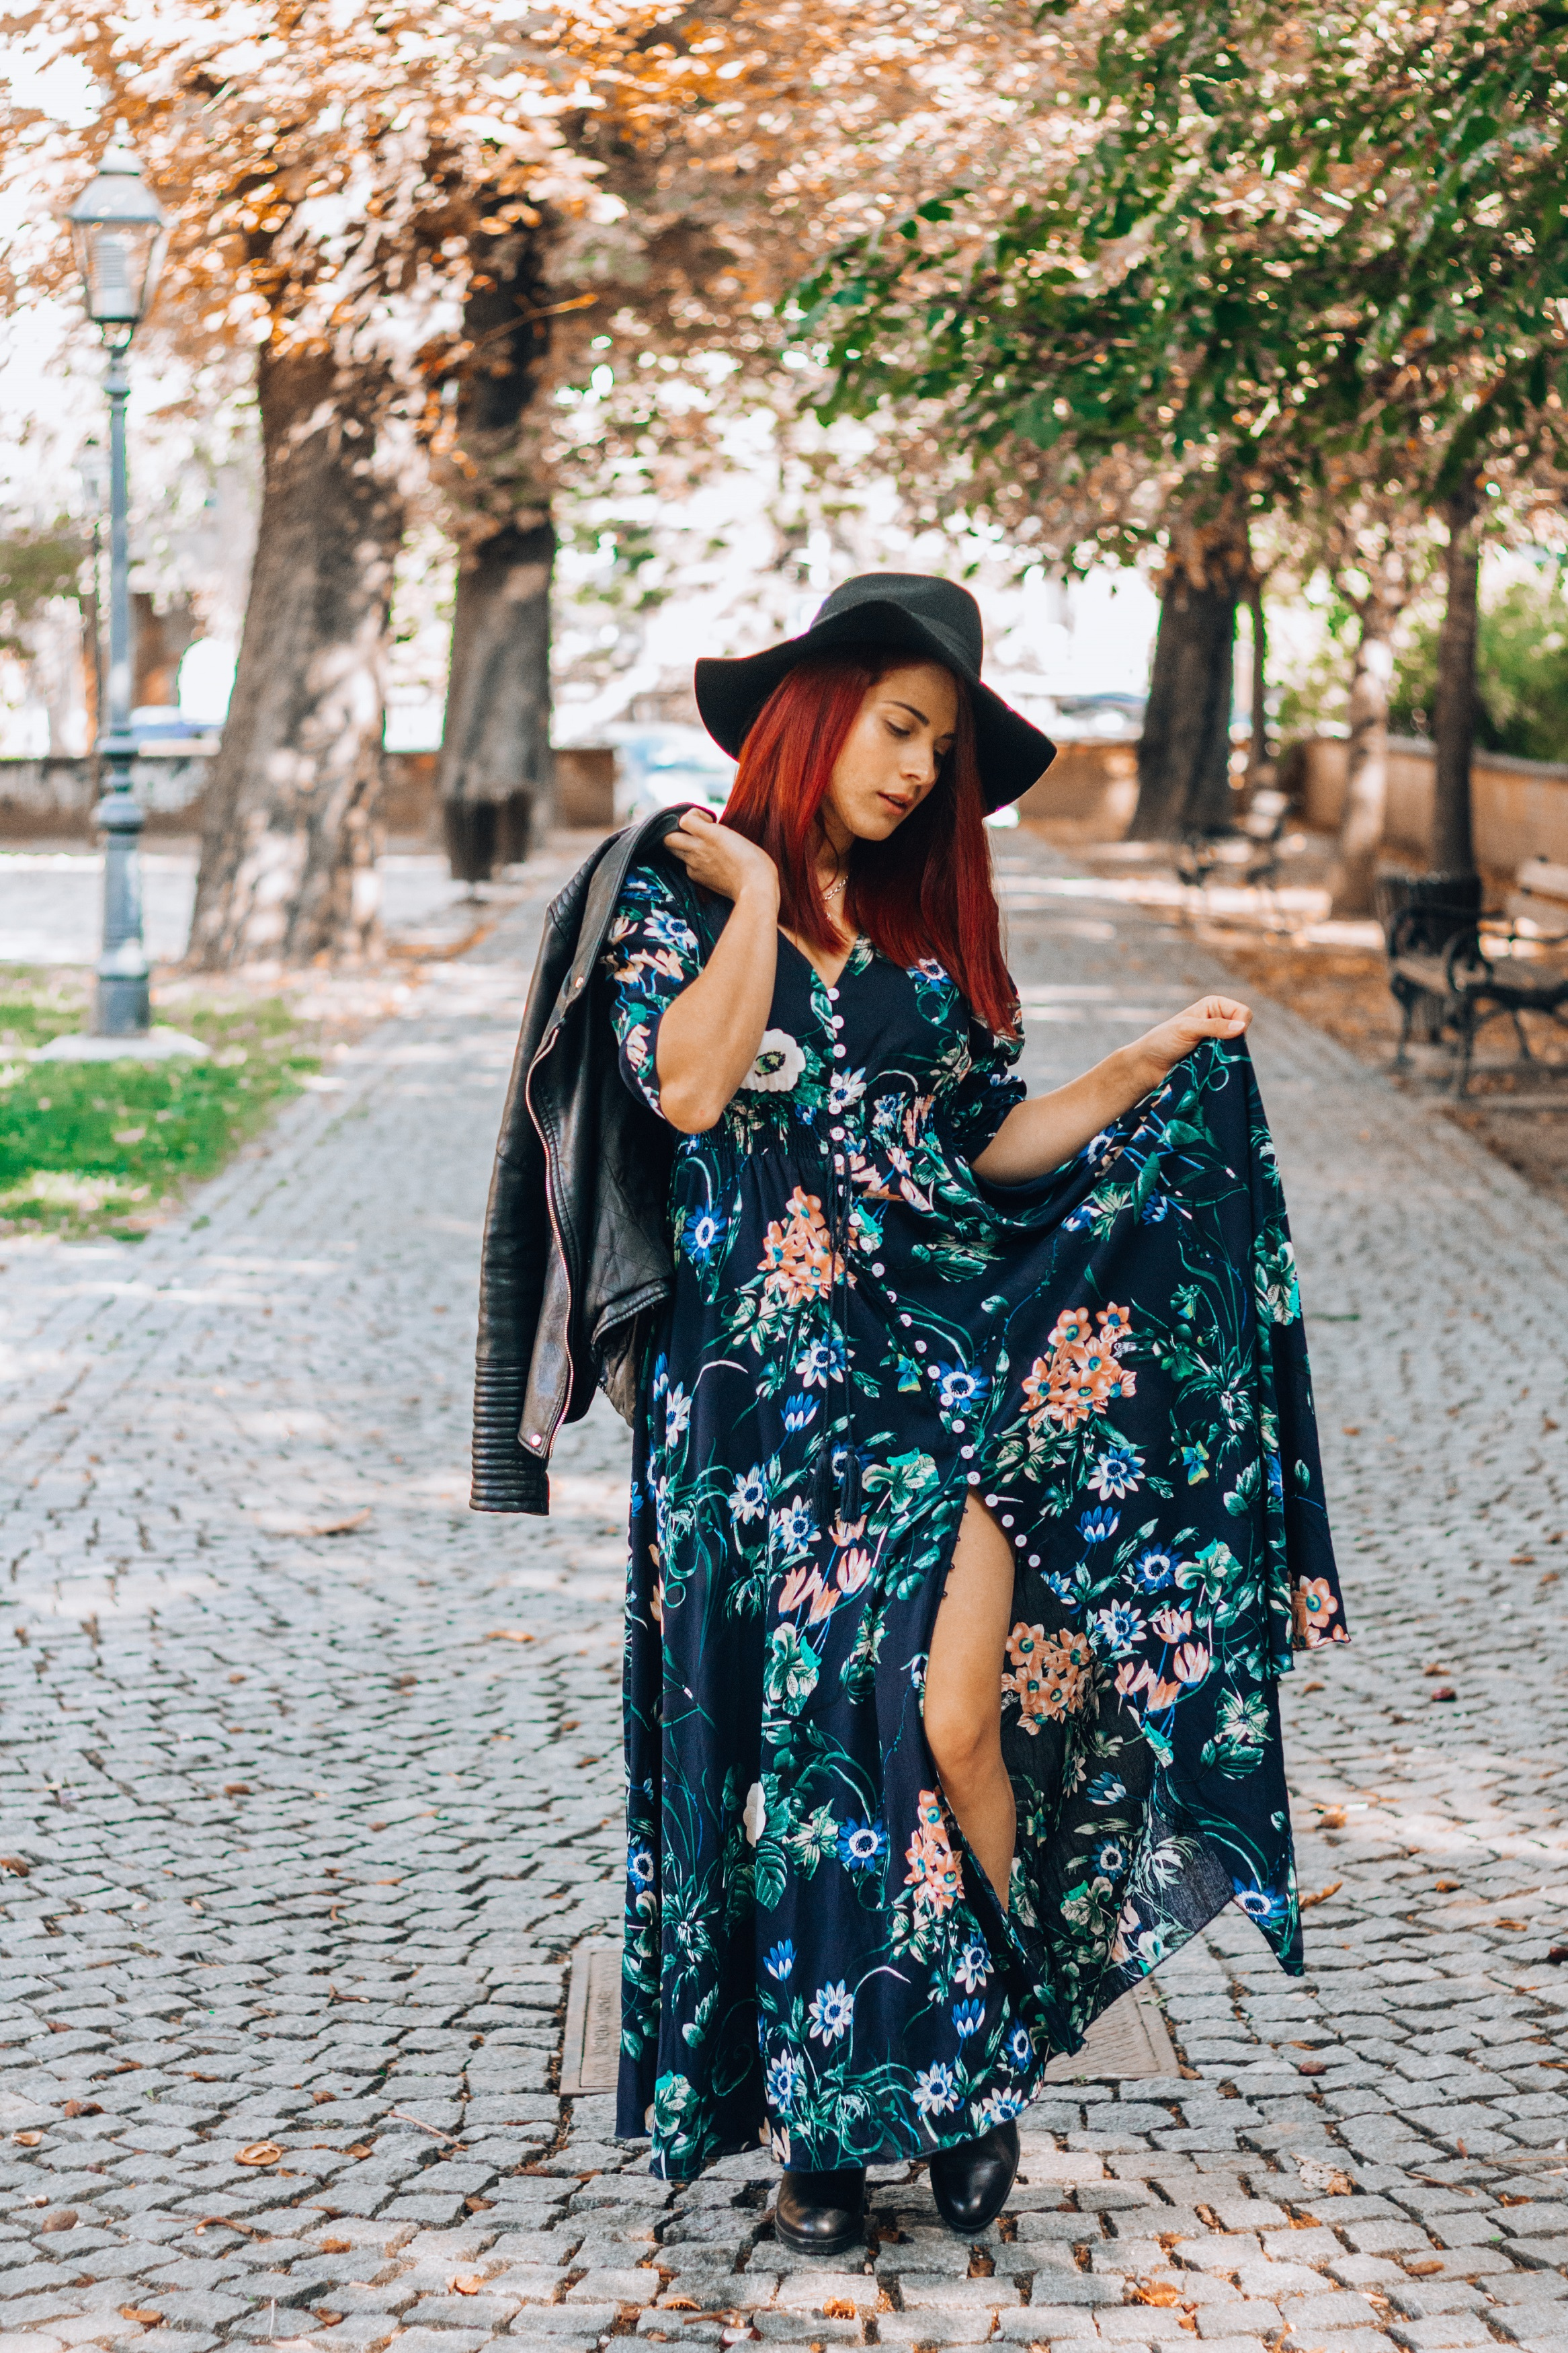 Todays Outfit – One hell of a flower print dress